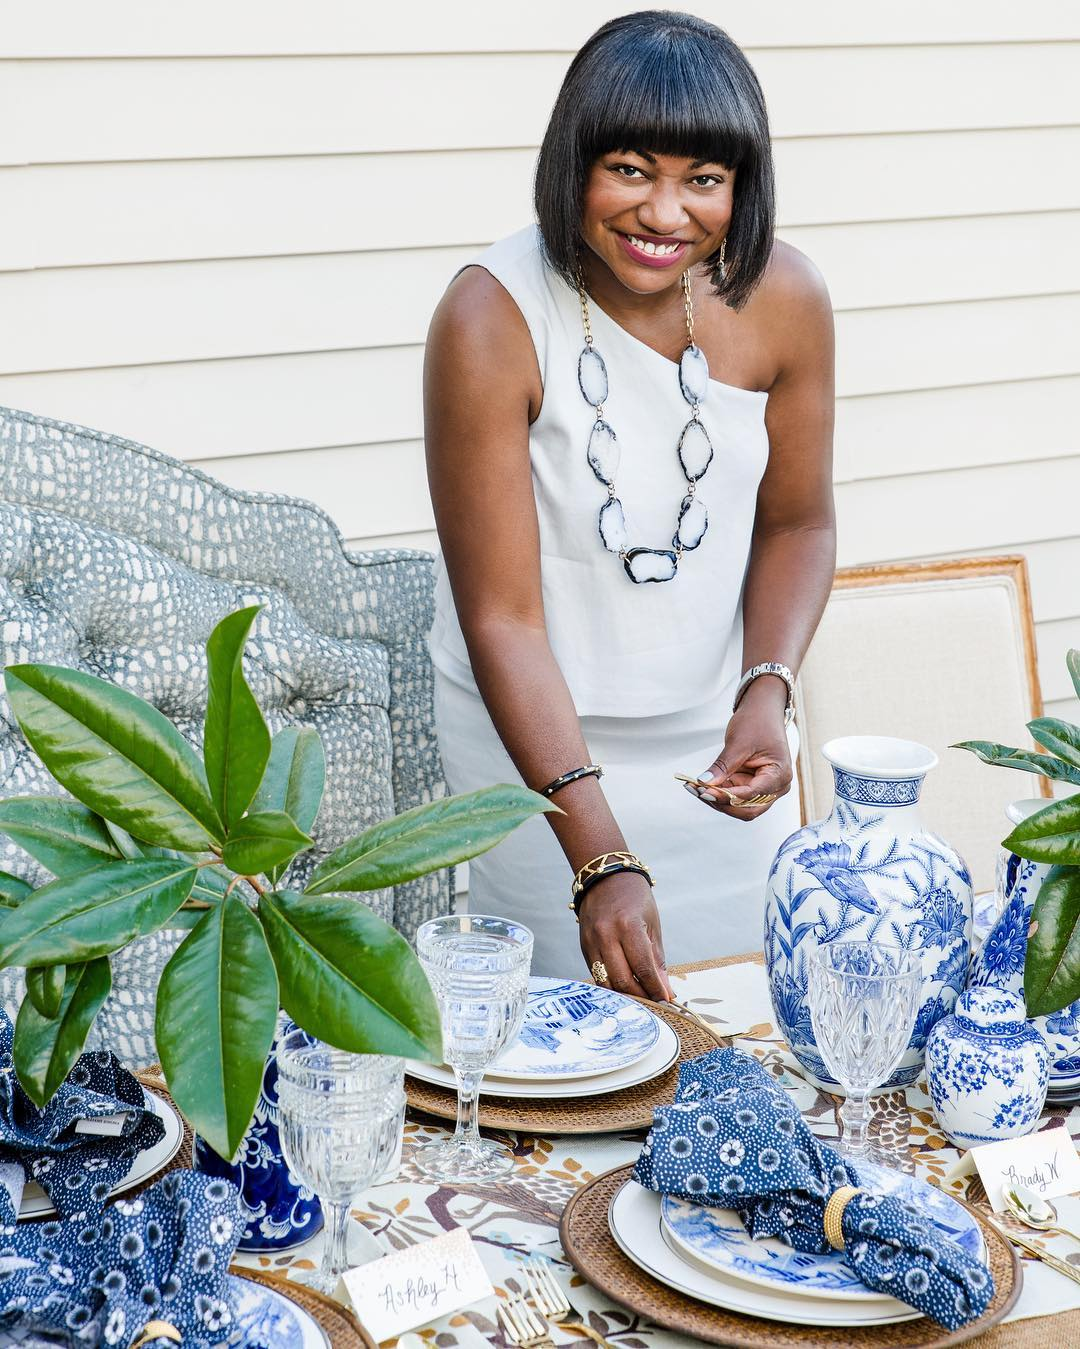 41936413_1955762564479909_5324922748756033536_o Southern Roots: Launch of Belle by Cheryl Luckett Furniture Collection